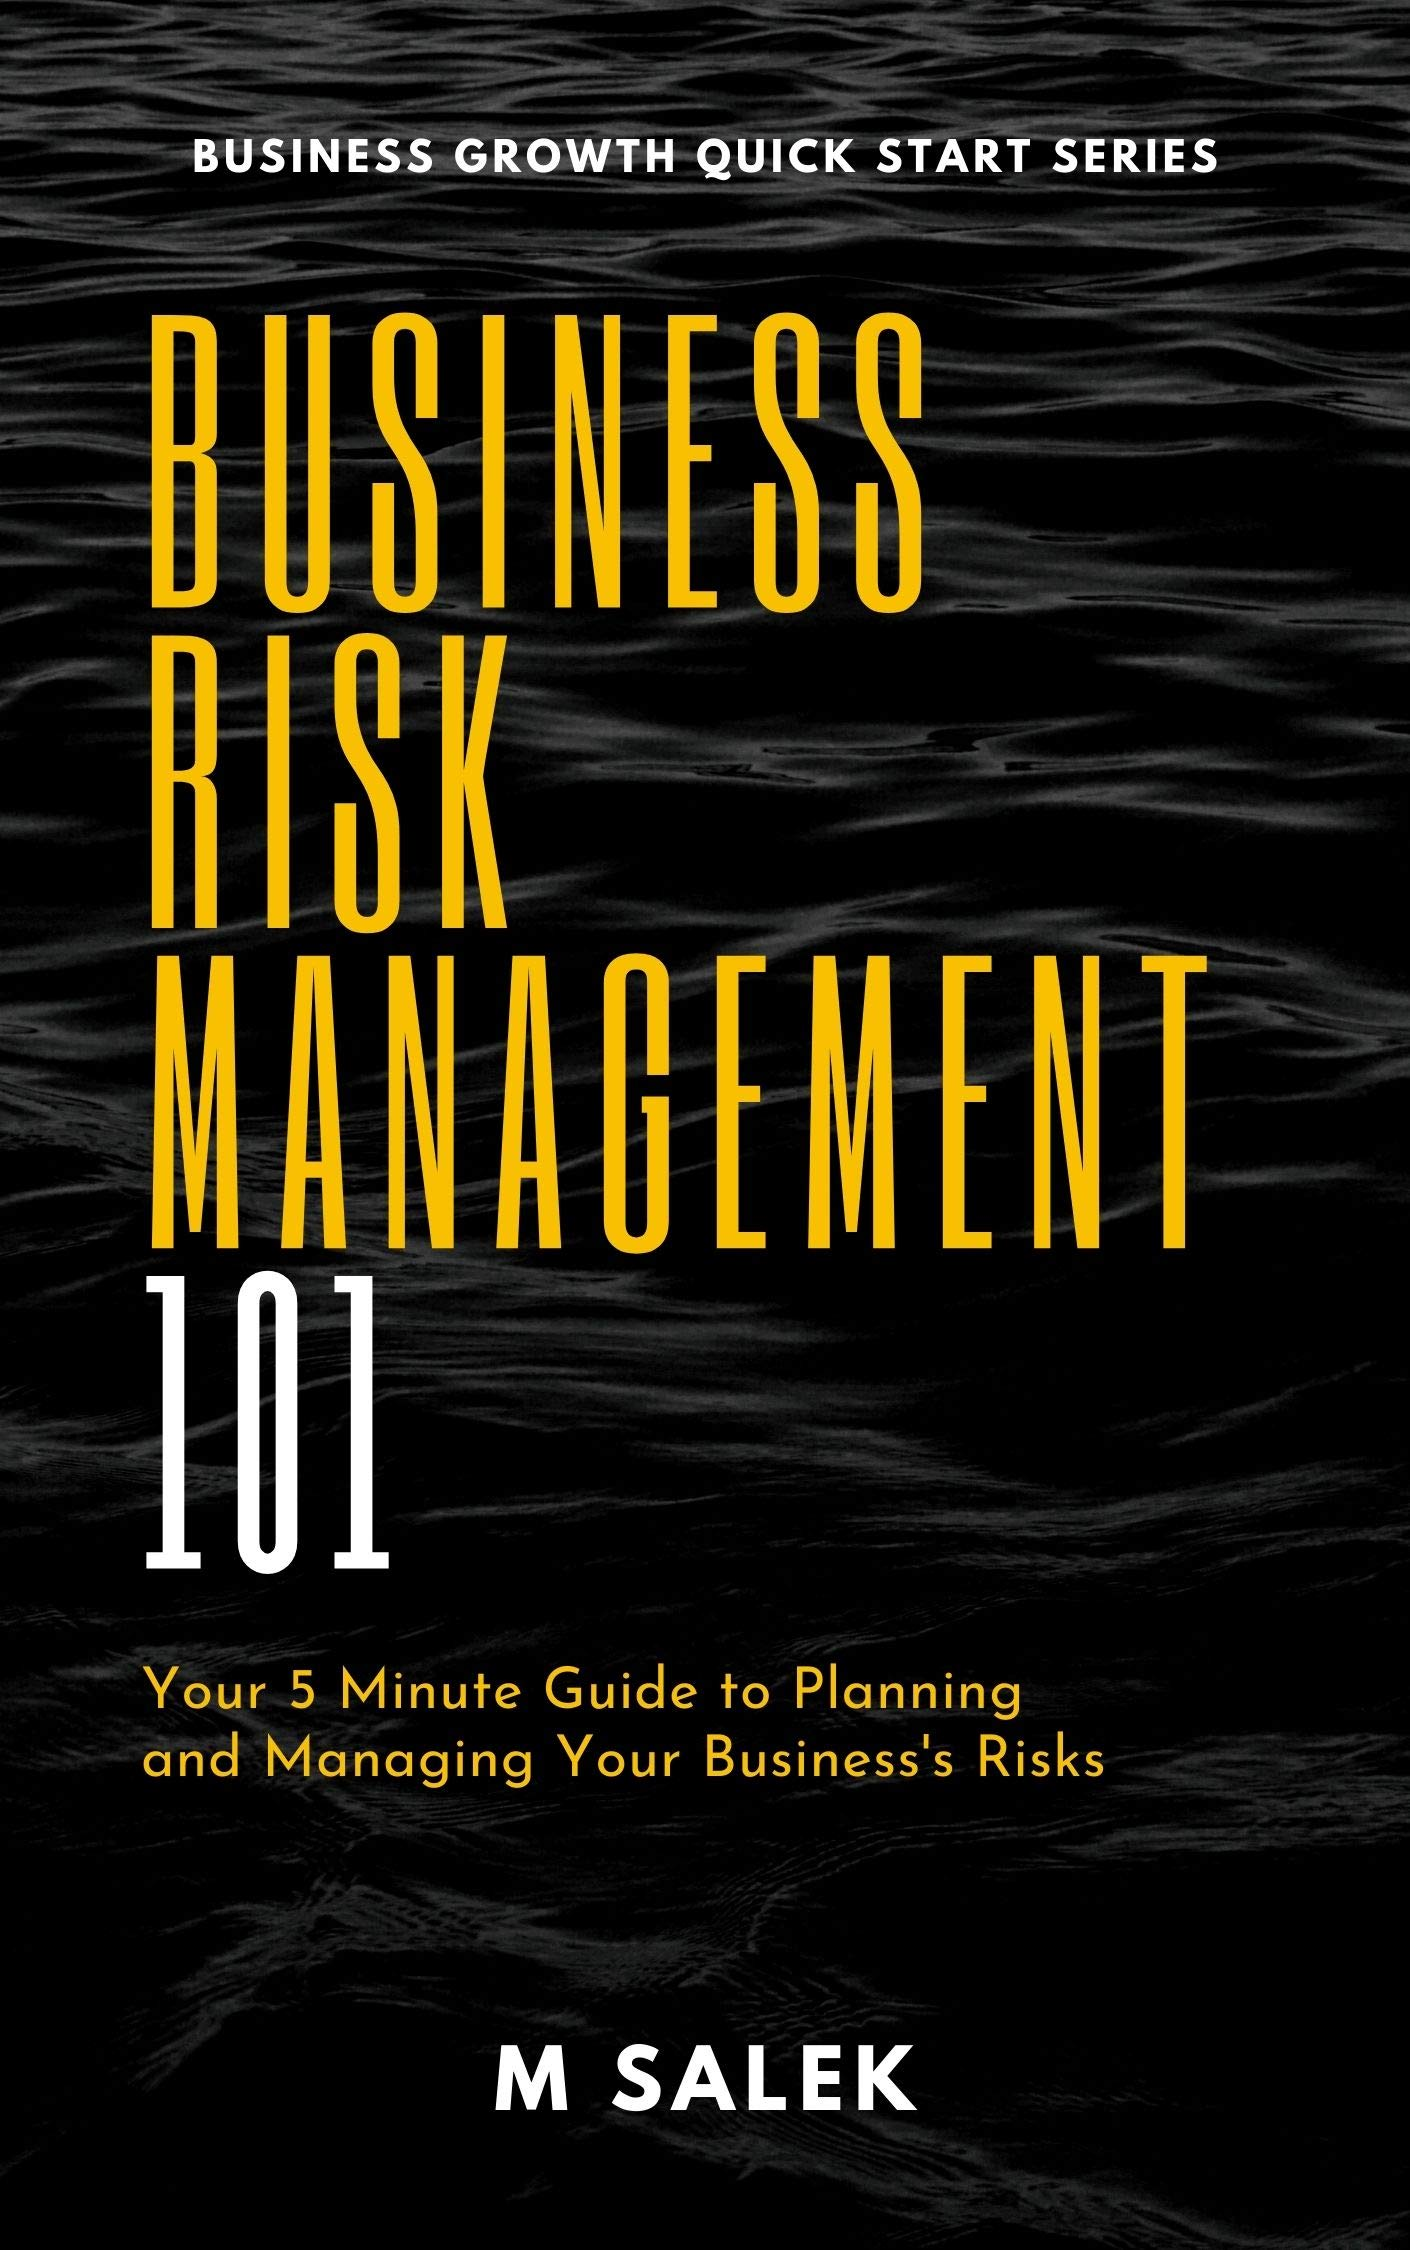 Business Risk Management 101 : Your 5 Minute Guide to Planning and Managing Your Business's Risks (Business Growth Quick Start Series Book 3)